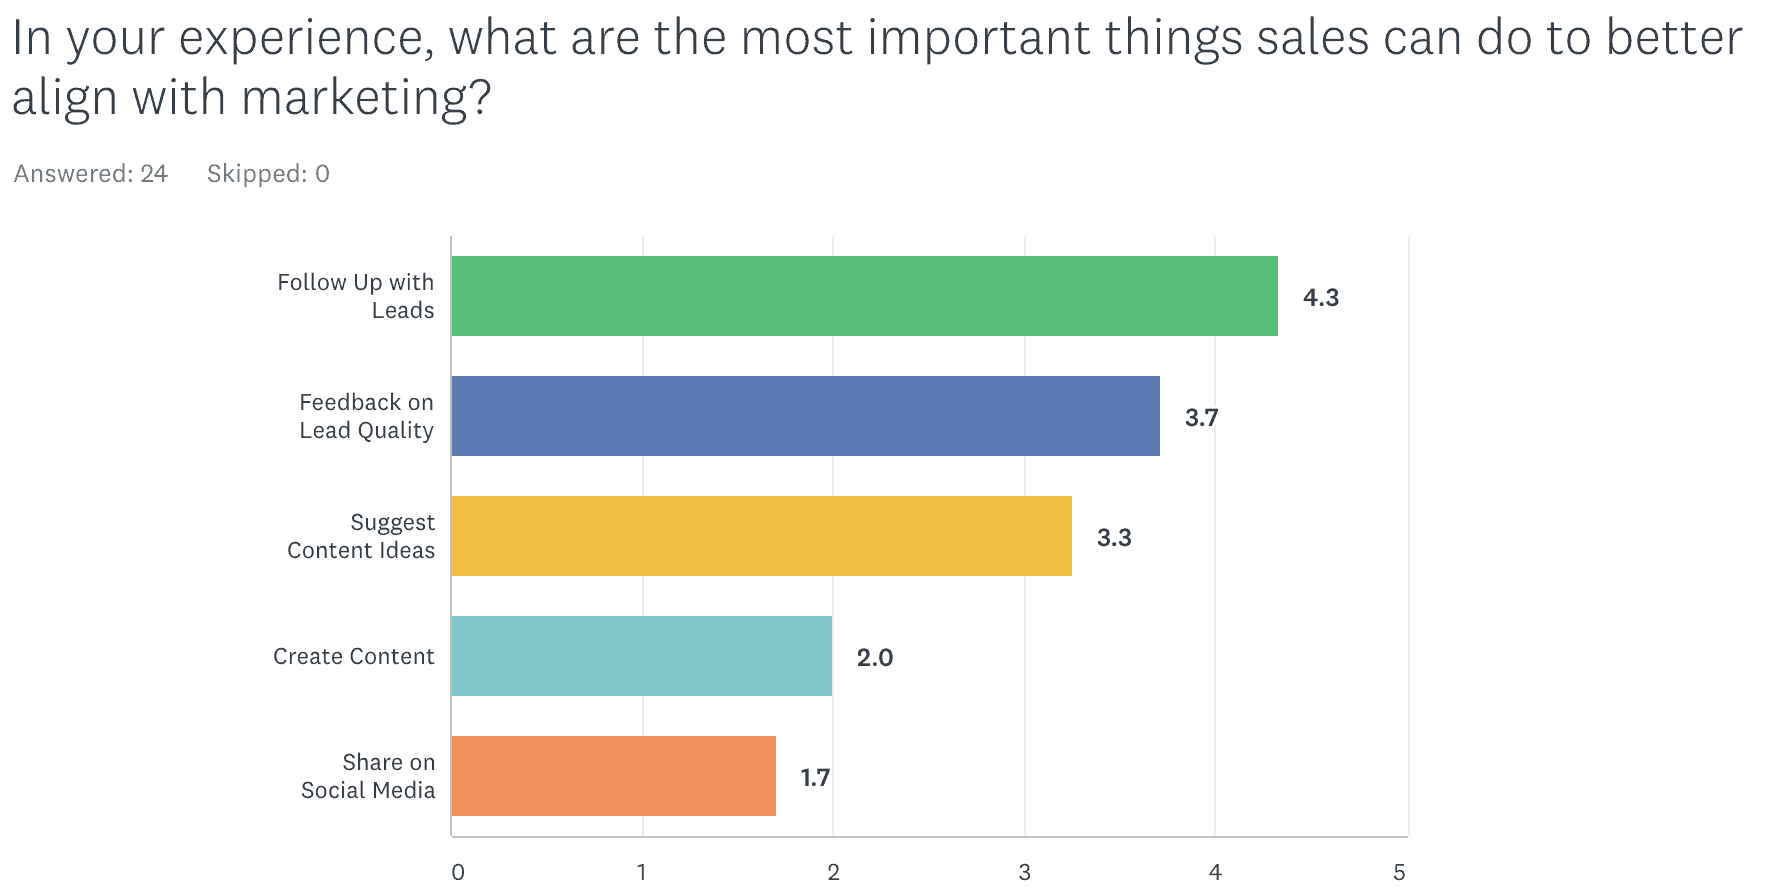 Survey of Top Priorities for Sales and Marketing